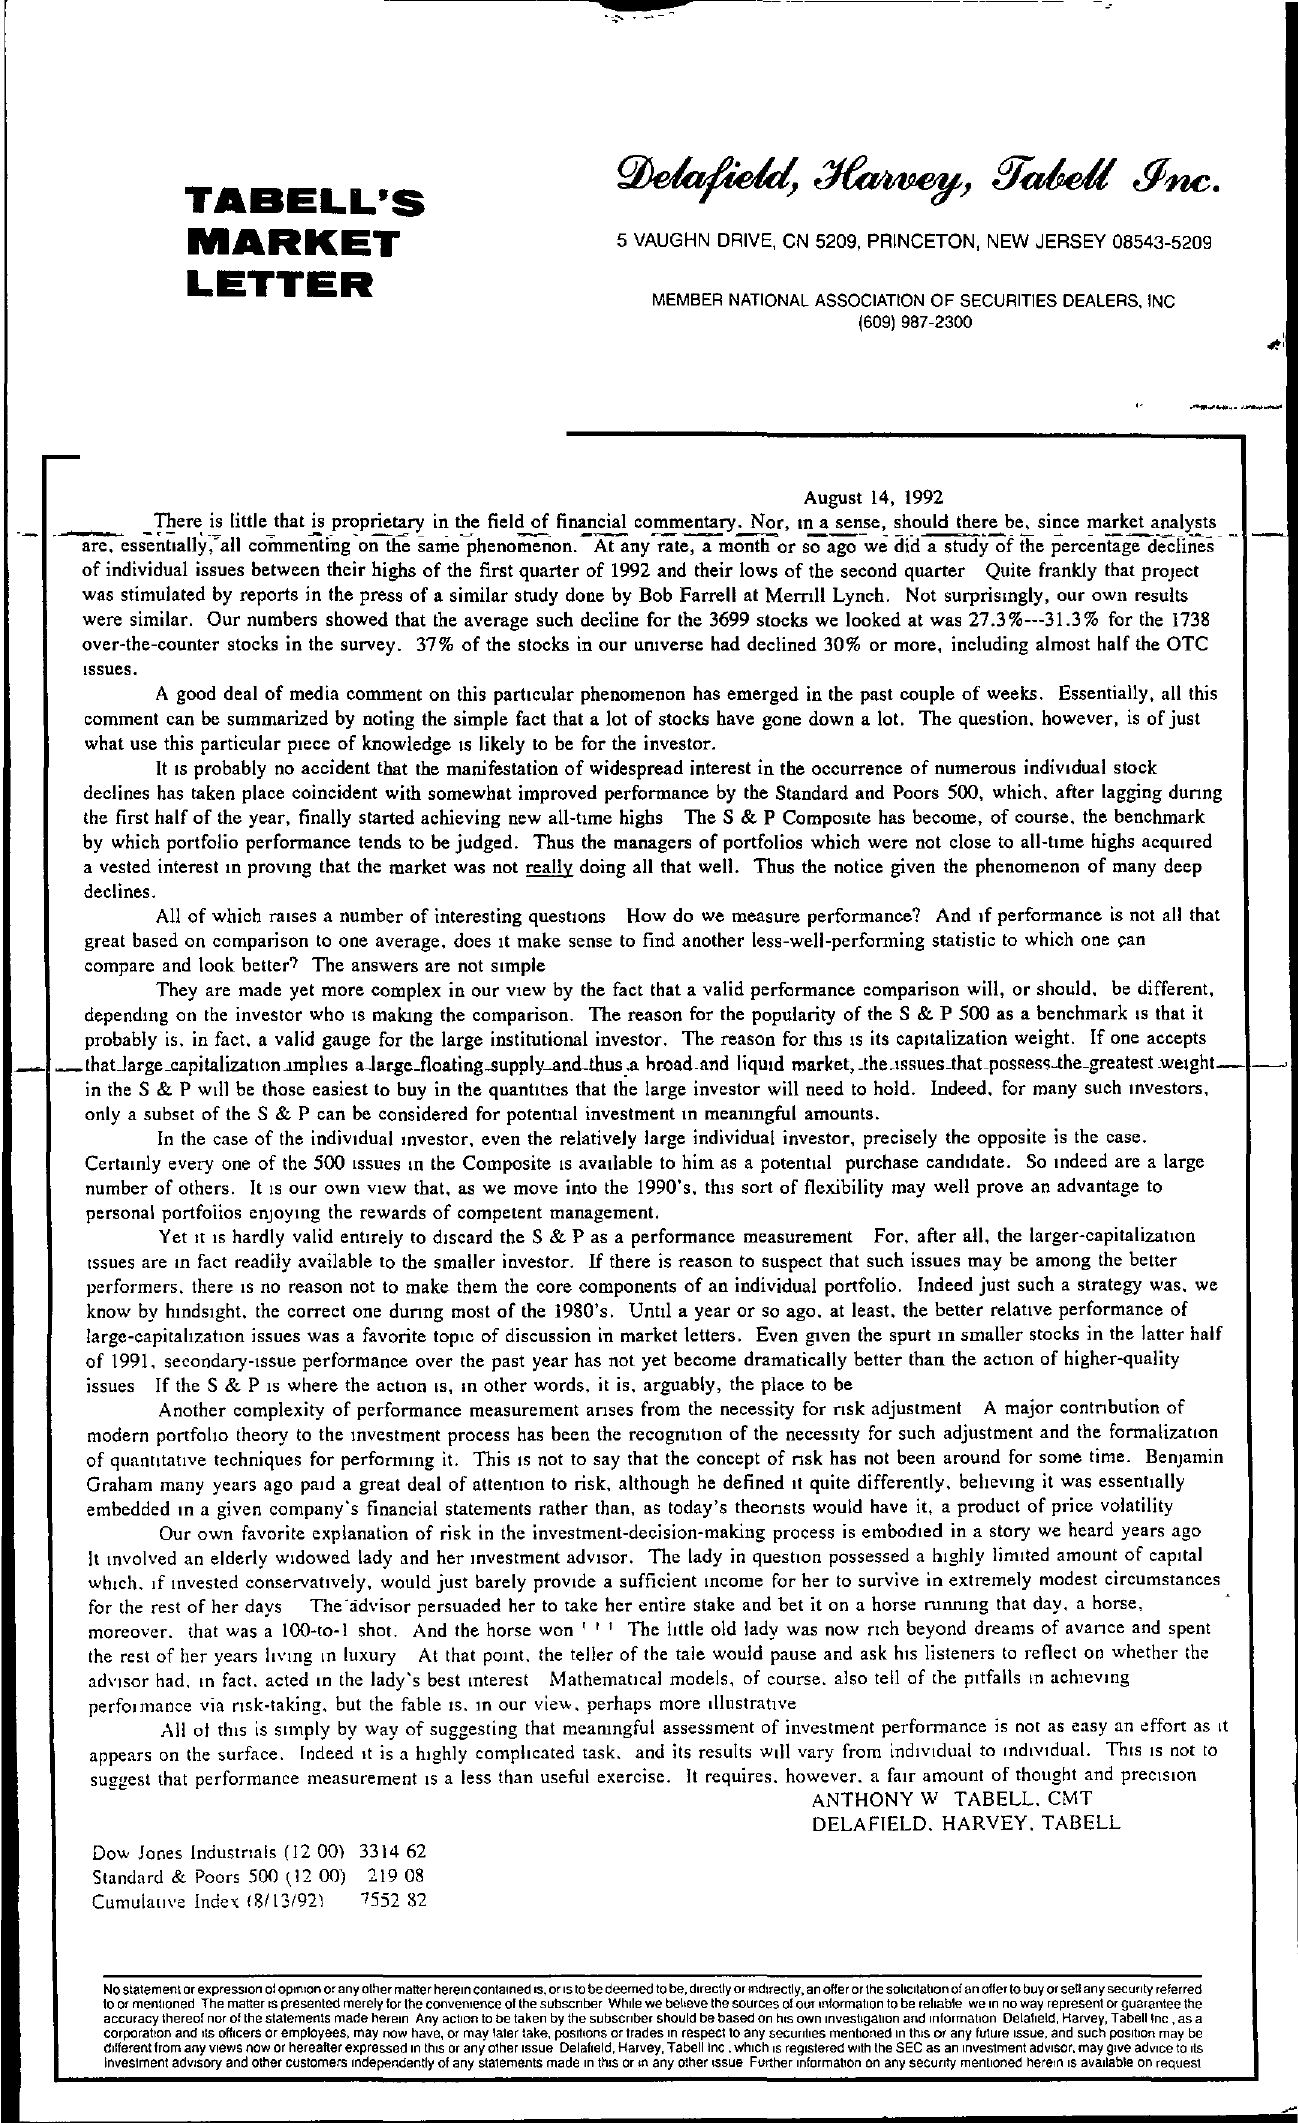 Tabell's Market Letter - August 14, 1992